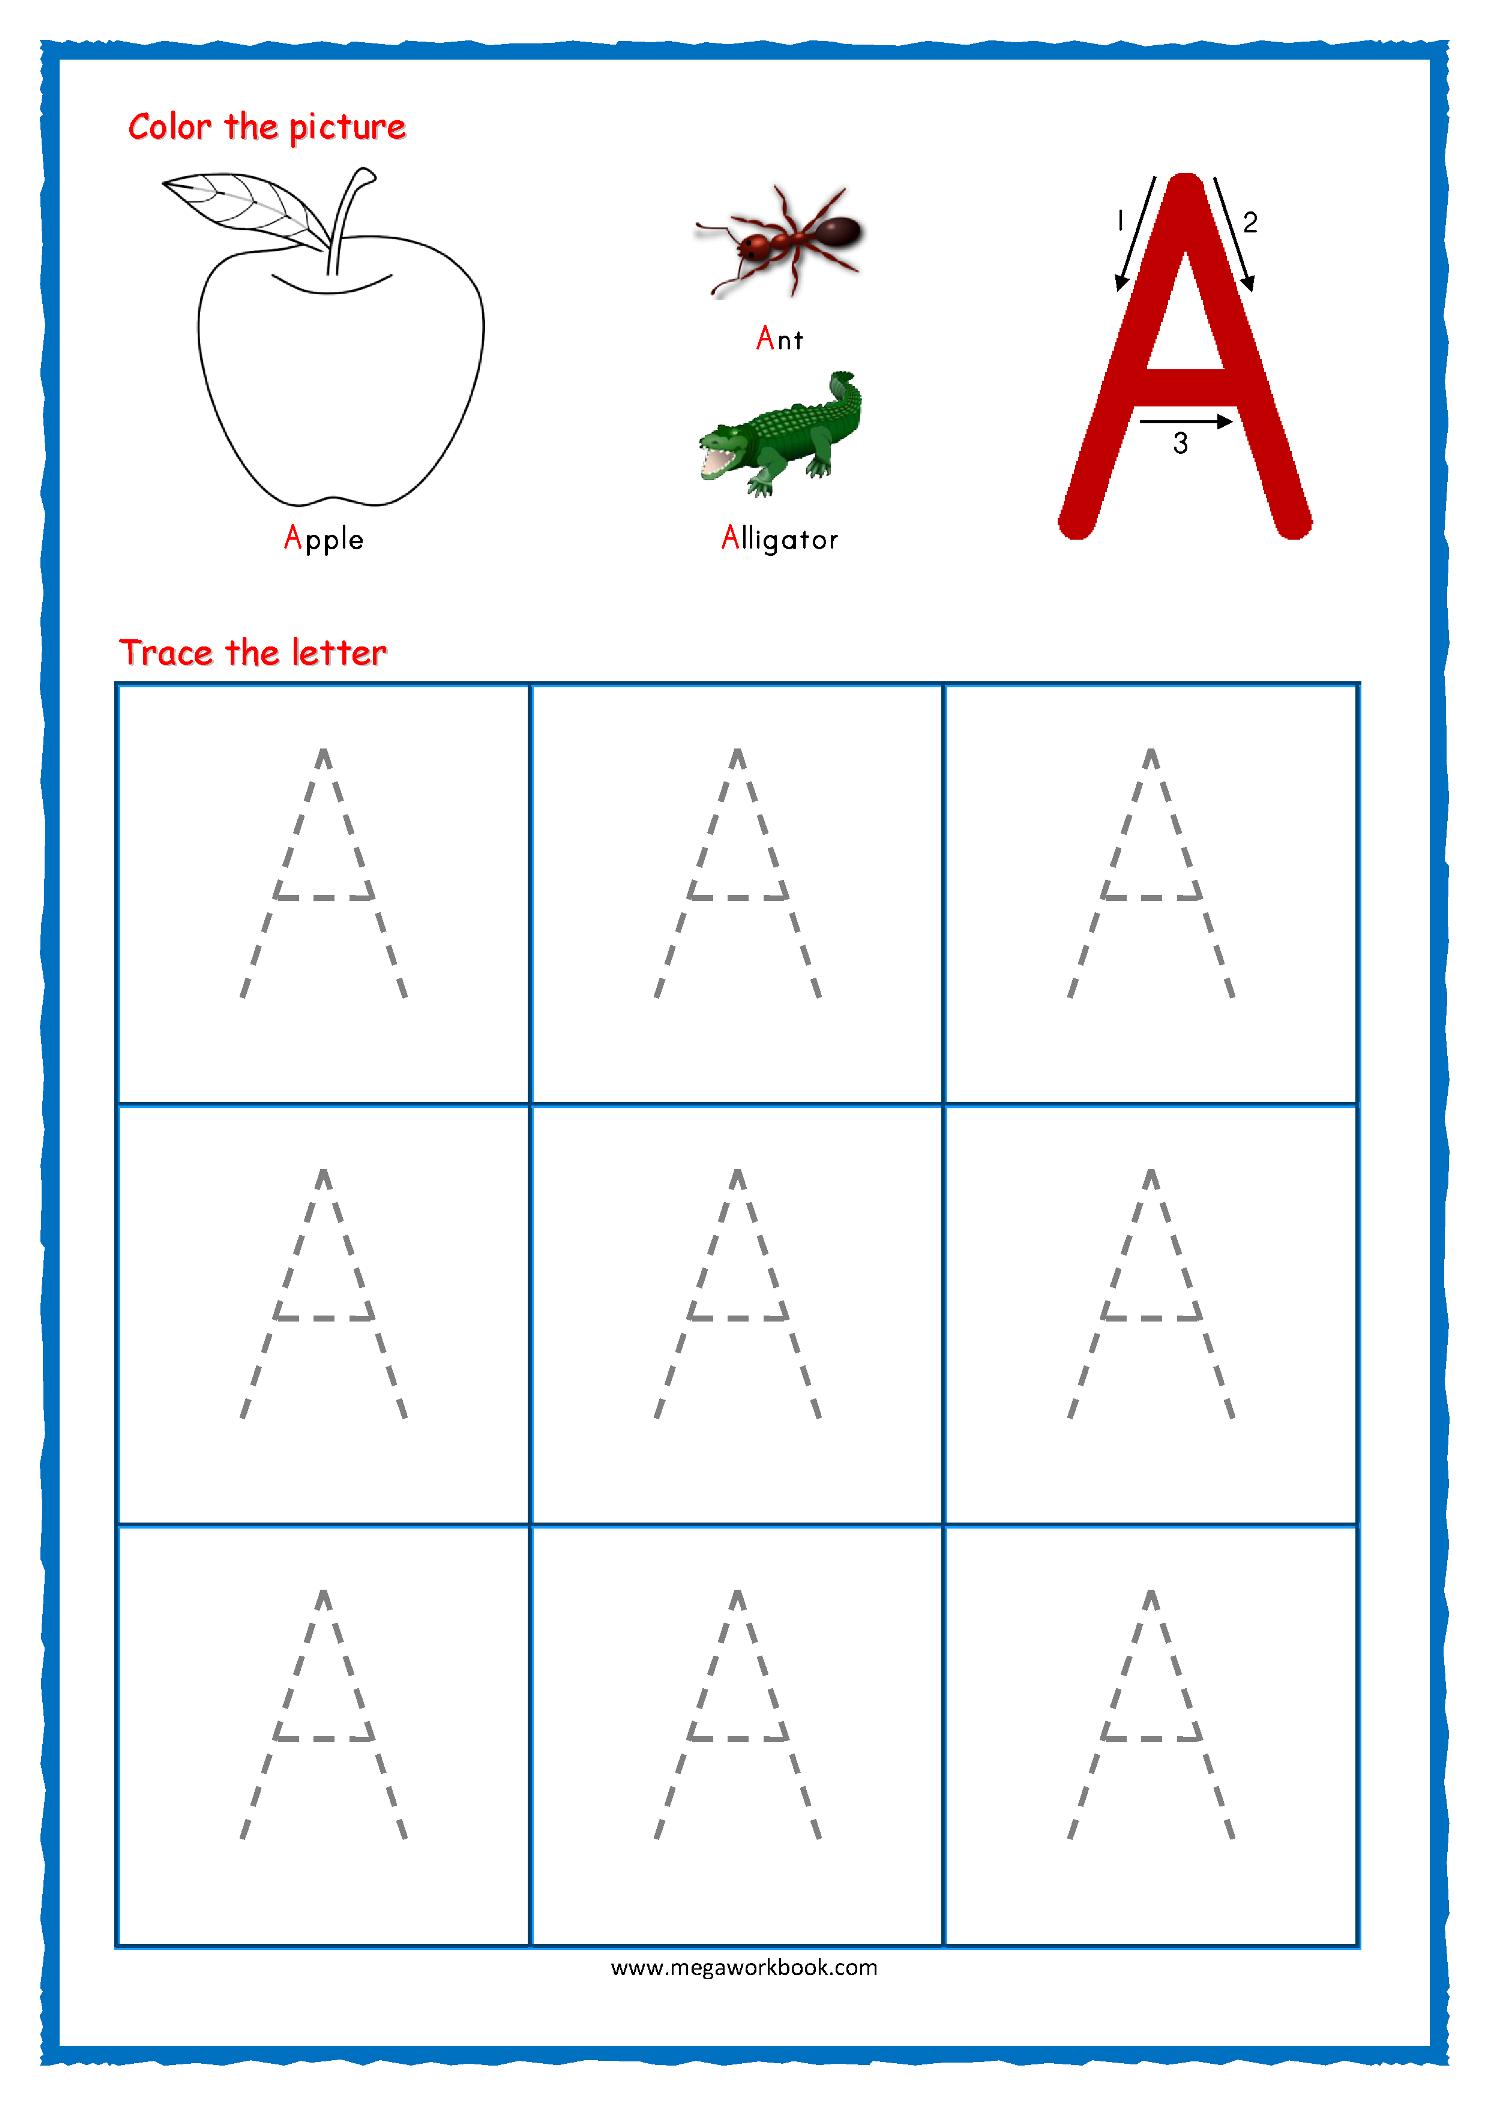 Coloring Book : Coloring Book Alphabet Tracing Worksheets regarding Abc Alphabet Tracing Letters